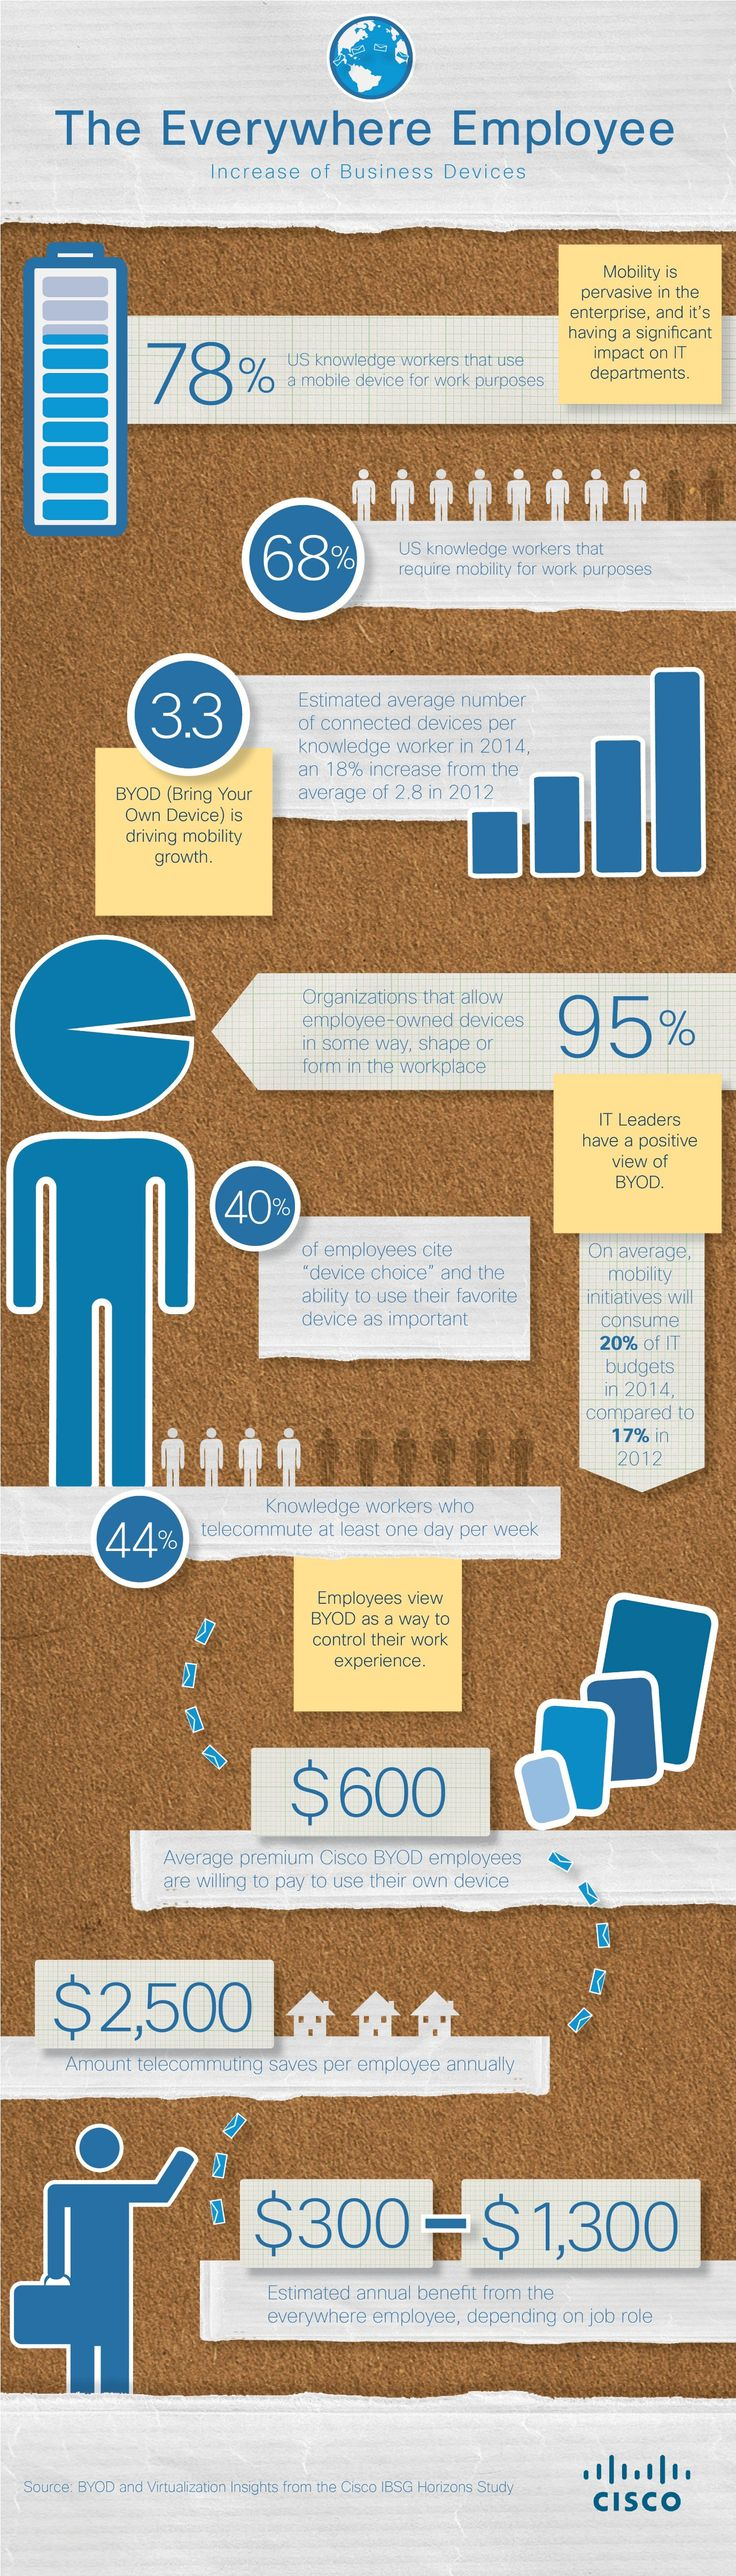 Cisco Blog » Blog Archive » How much does telecommuting save, anyway? (Hint: LOTS)  |  Infographic